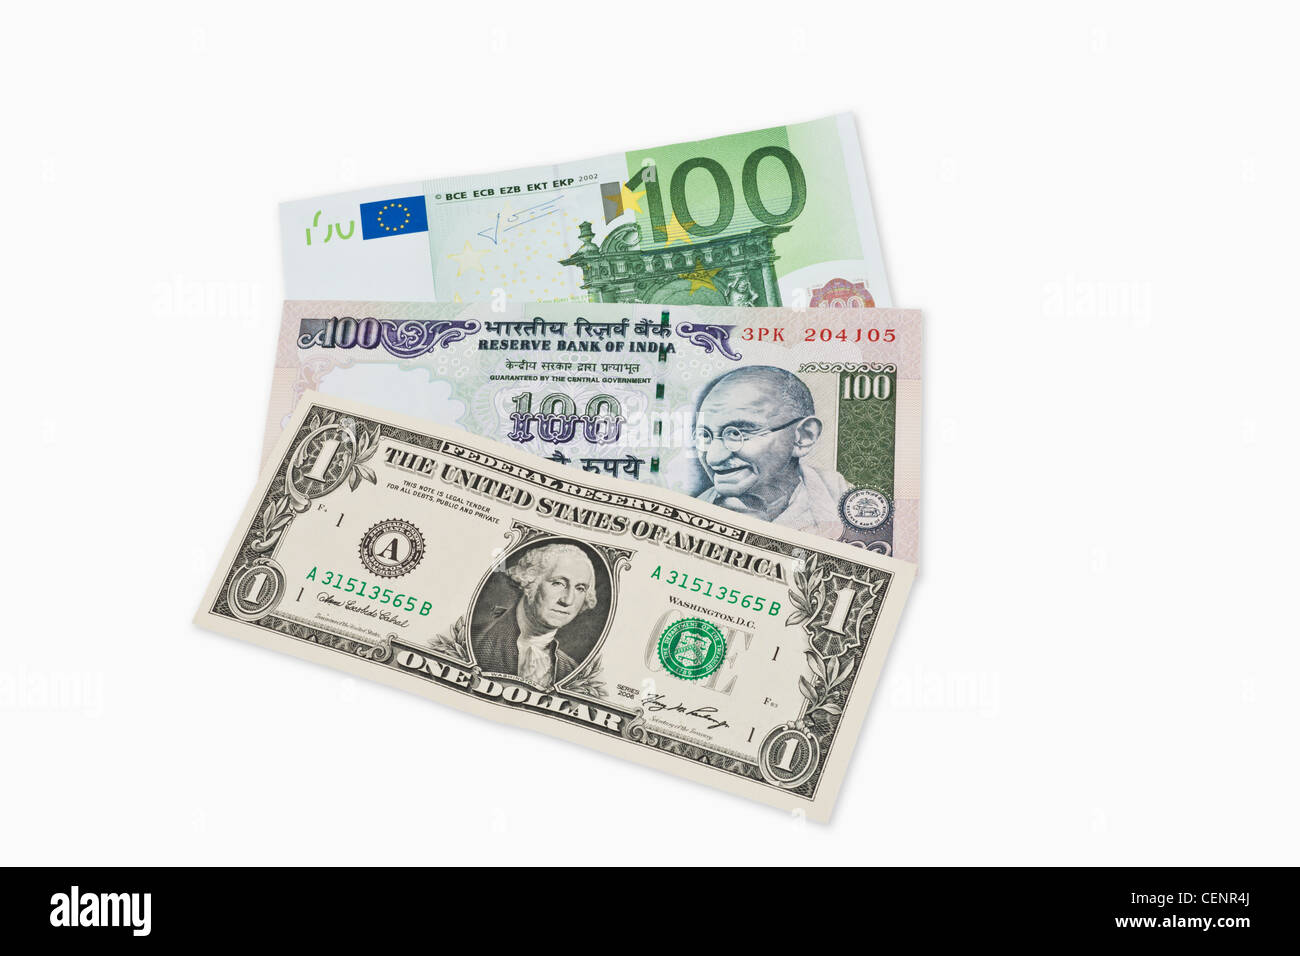 three bills worth 100 indian rupees 100 euro and 1 u s dollar lie stock photo 43505074 alamy. Black Bedroom Furniture Sets. Home Design Ideas